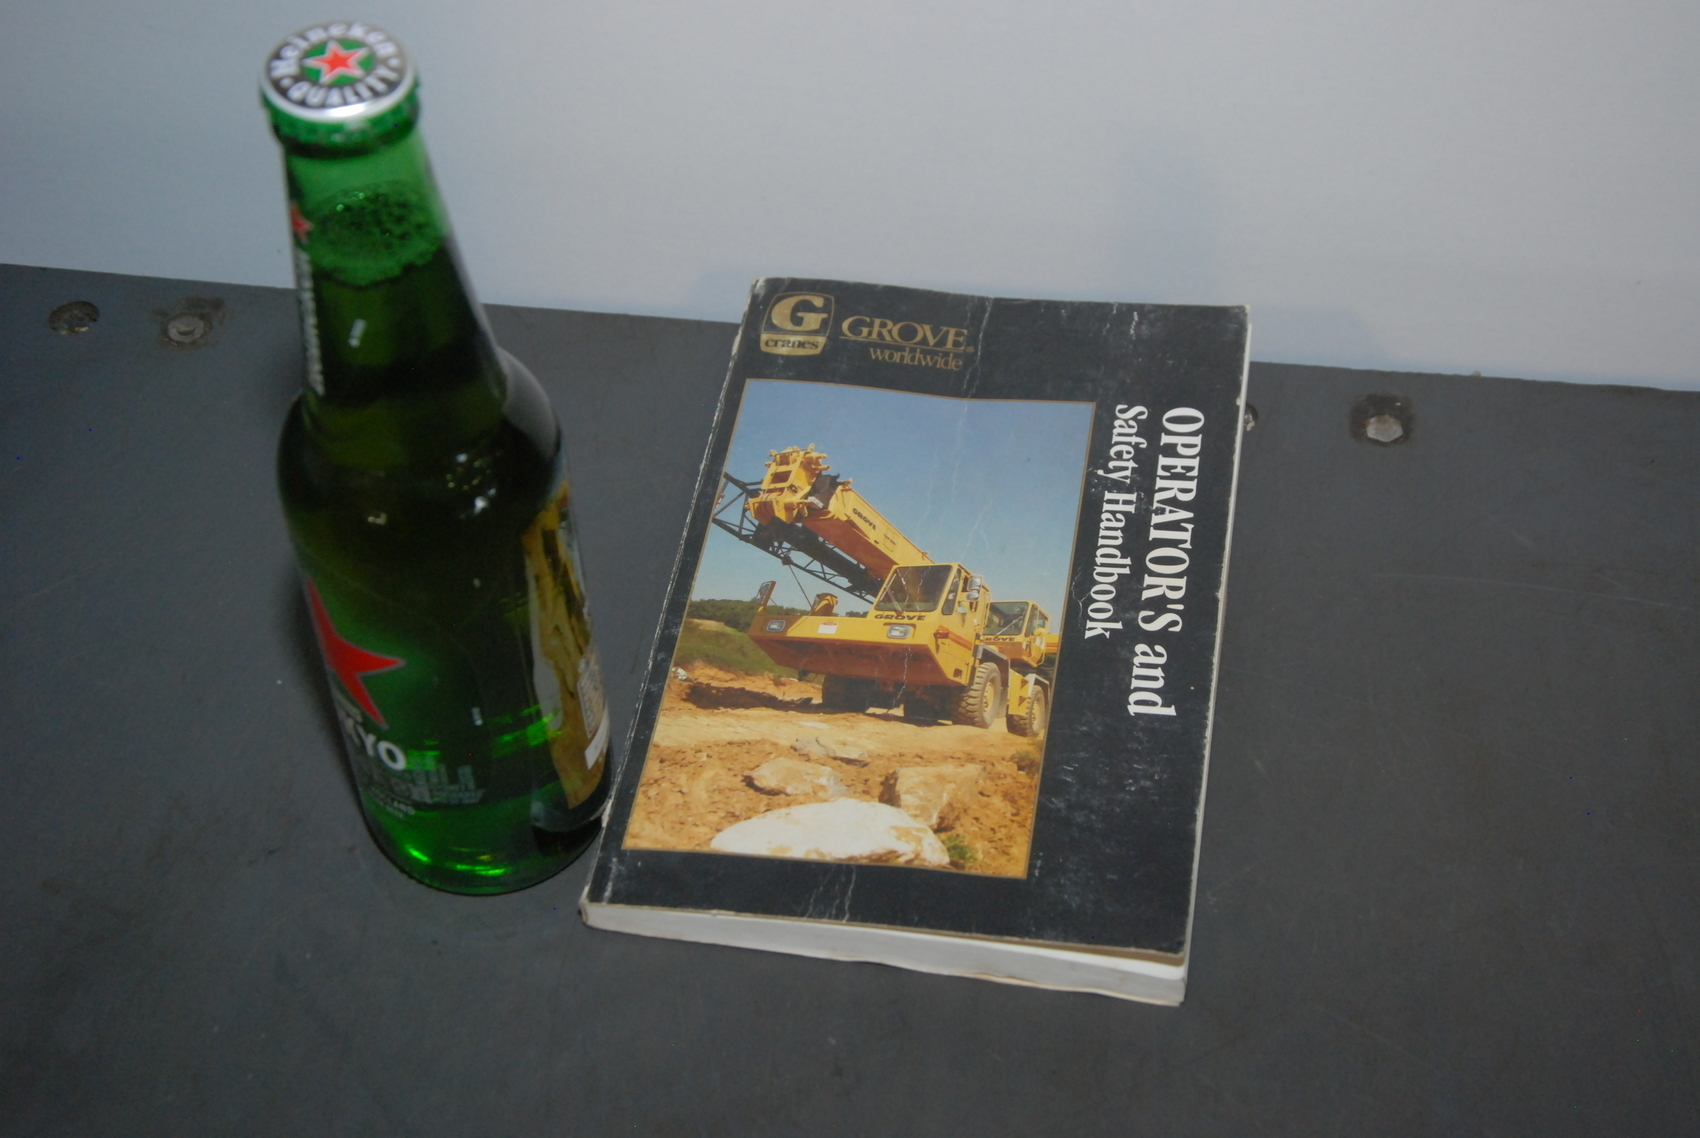 grove rt635c crane operators handbook manual nopl inv 22827 ebay rh ebay com grove rt635c parts manual grove rt635c parts manual